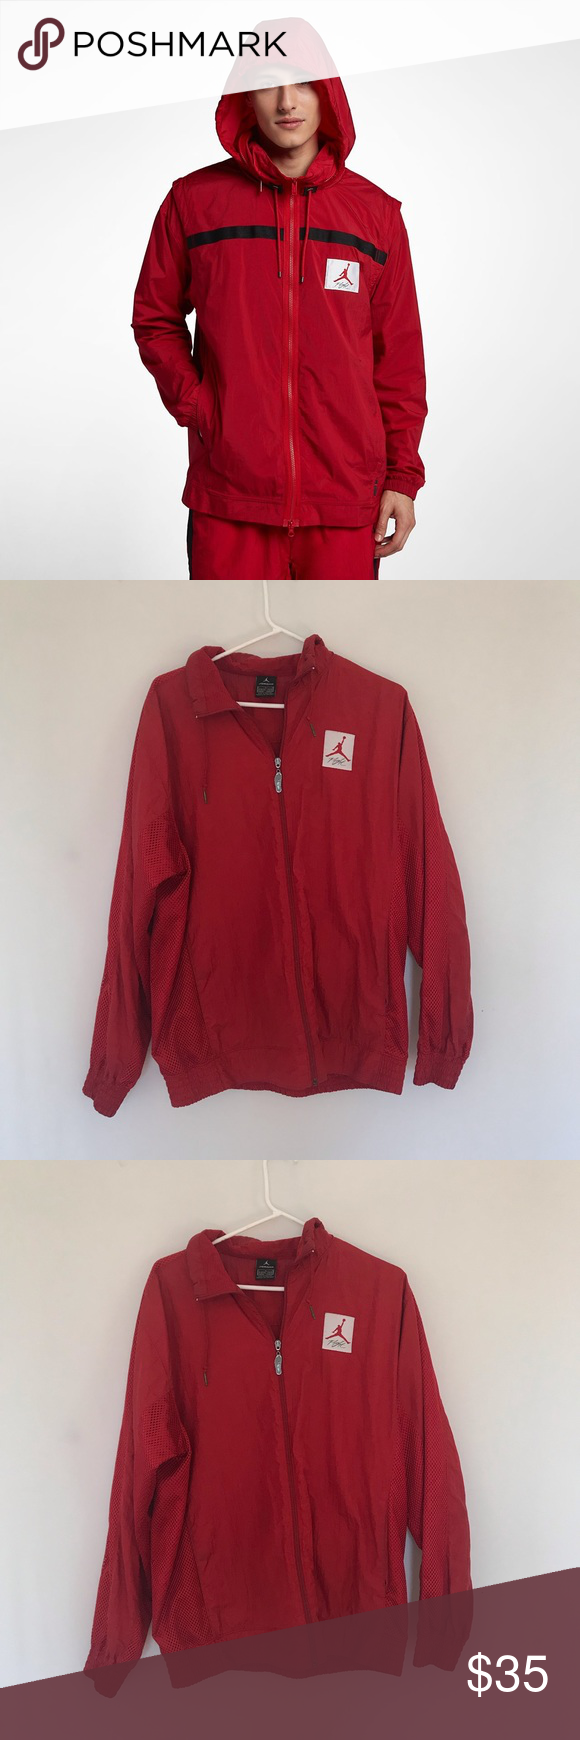 c0803251a92 Red Jordan jacket Men's red Jordan jacket in great condition! Feel free to  reach out with any questions! Jordan Jackets & Coats Windbreakers